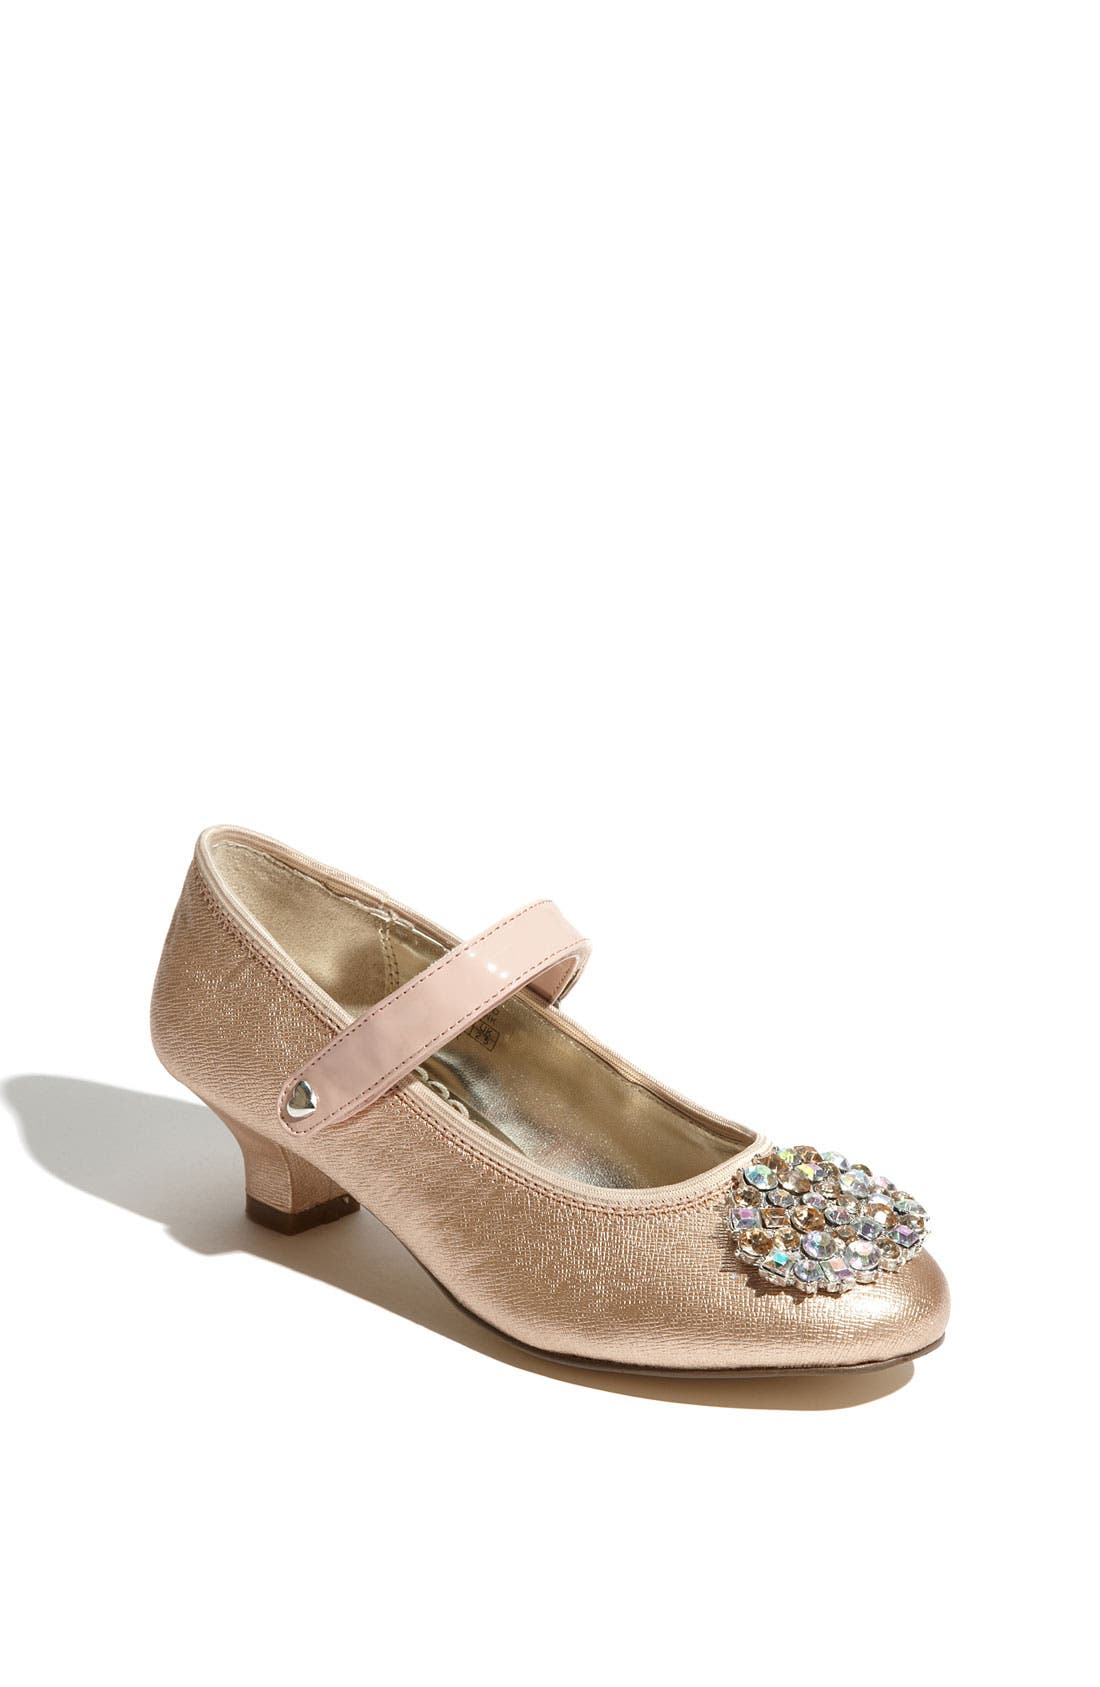 Main Image - Juicy Couture 'Phoebe' Shoe (Toddler, Little Kid & Big Kid)